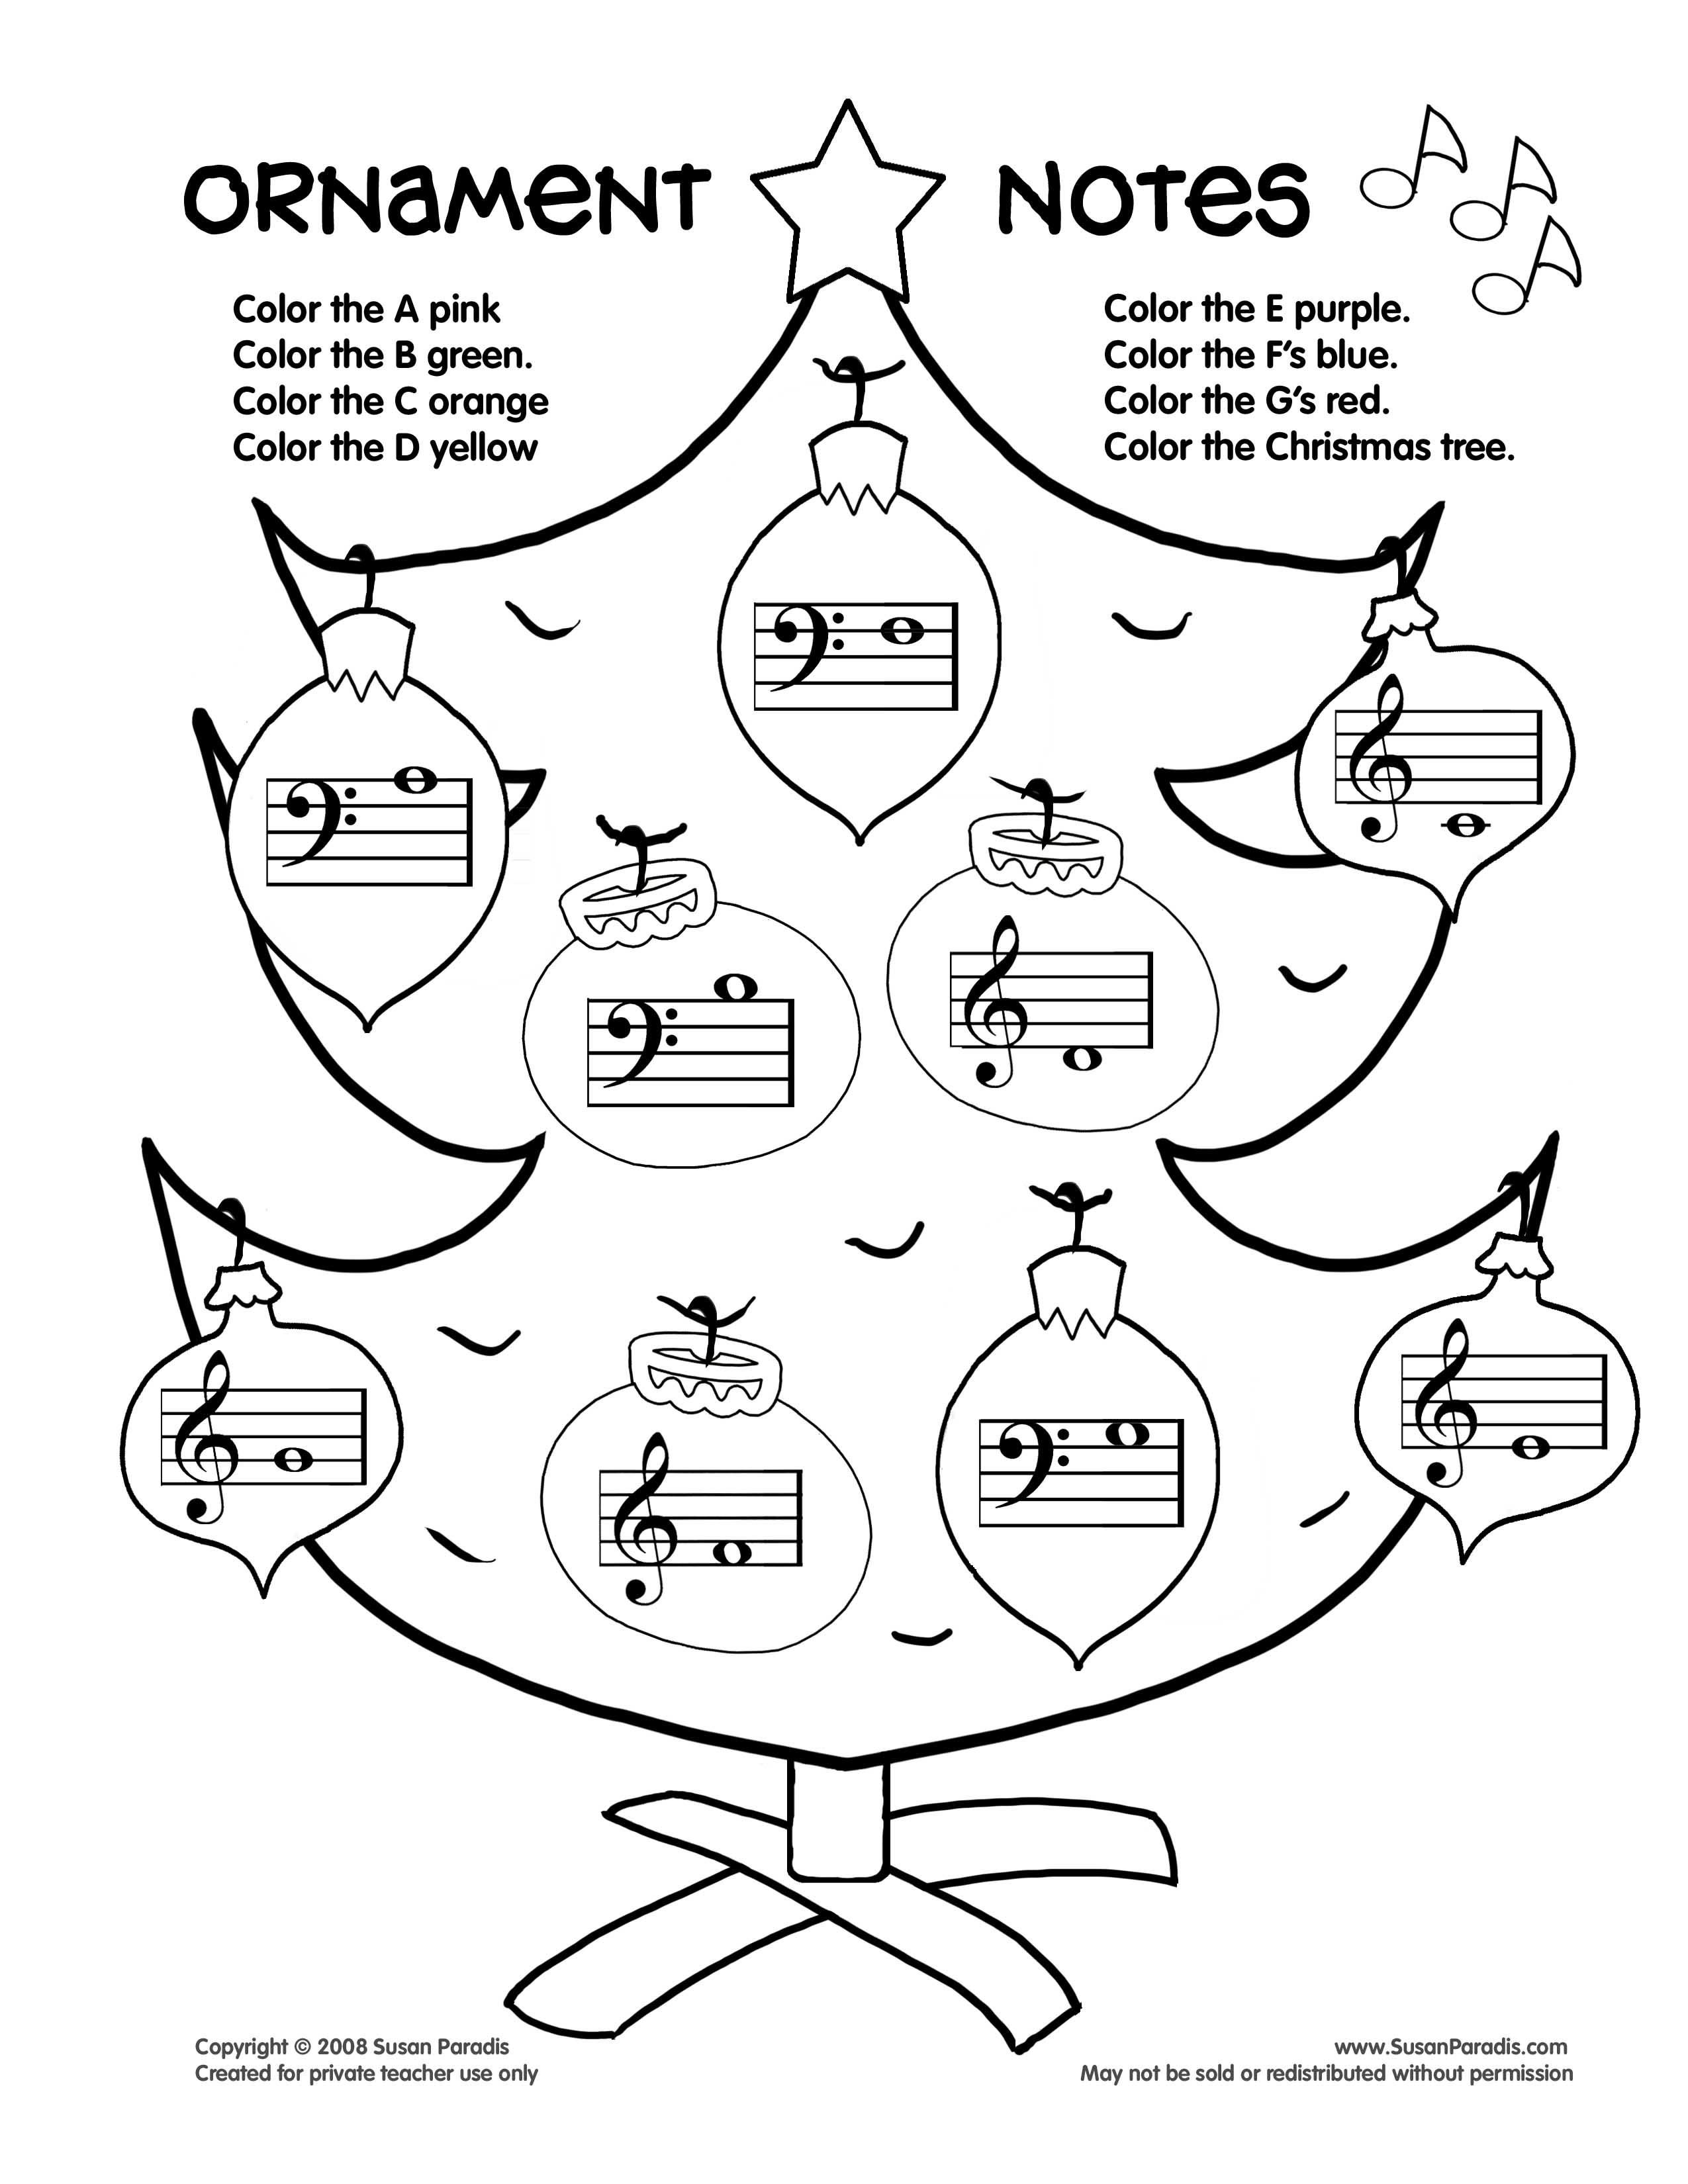 Worksheets Music Theory Worksheets For Middle School christmas and seasonal printables worksheets pianos music class printables